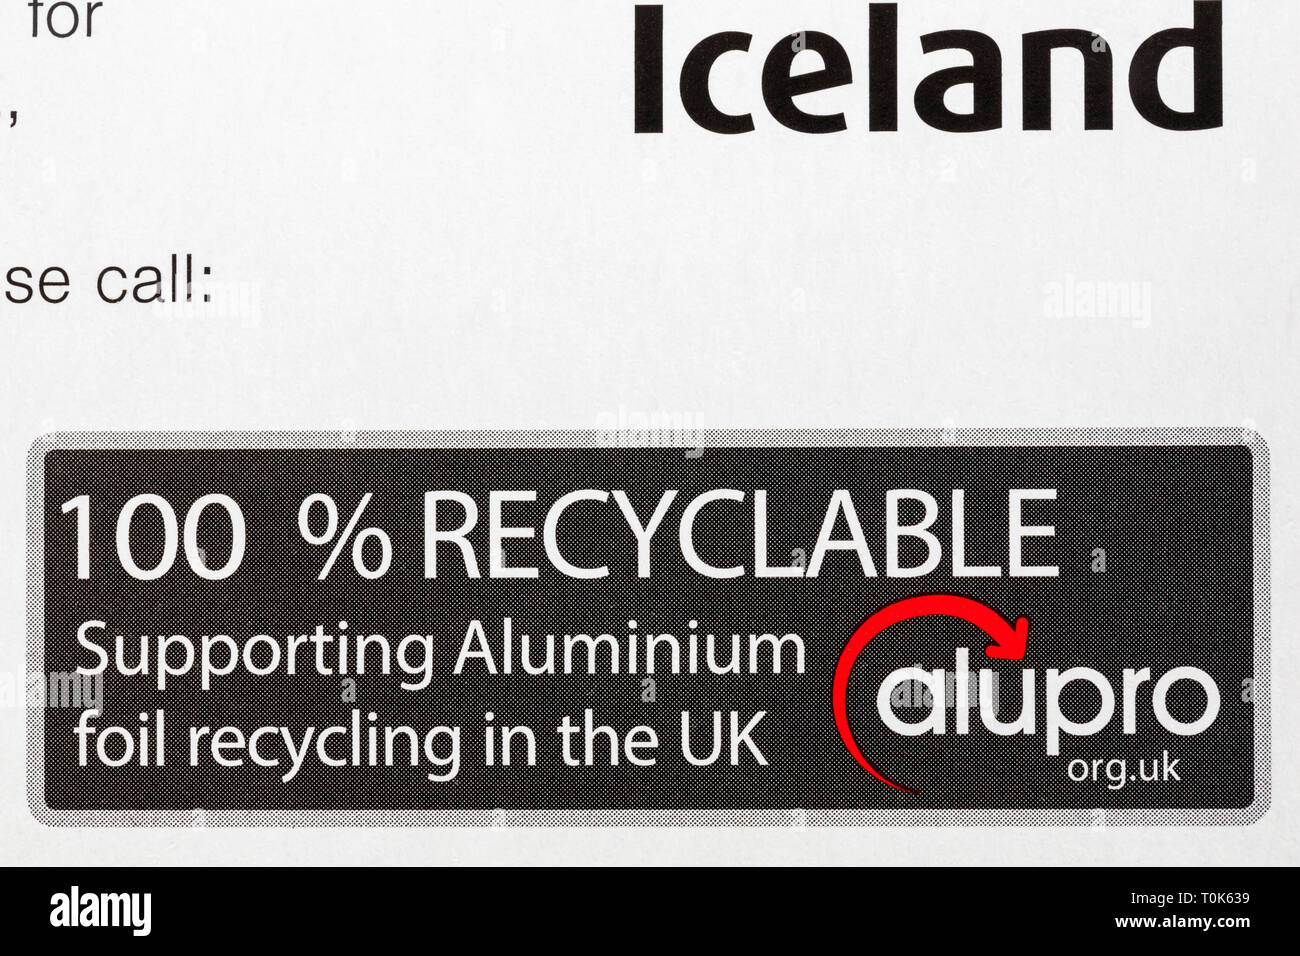 100% recyclable Supporting Aluminium foil recycling in the UK alupro - detail on box of Iceland extra thick kitchen foil - Stock Image